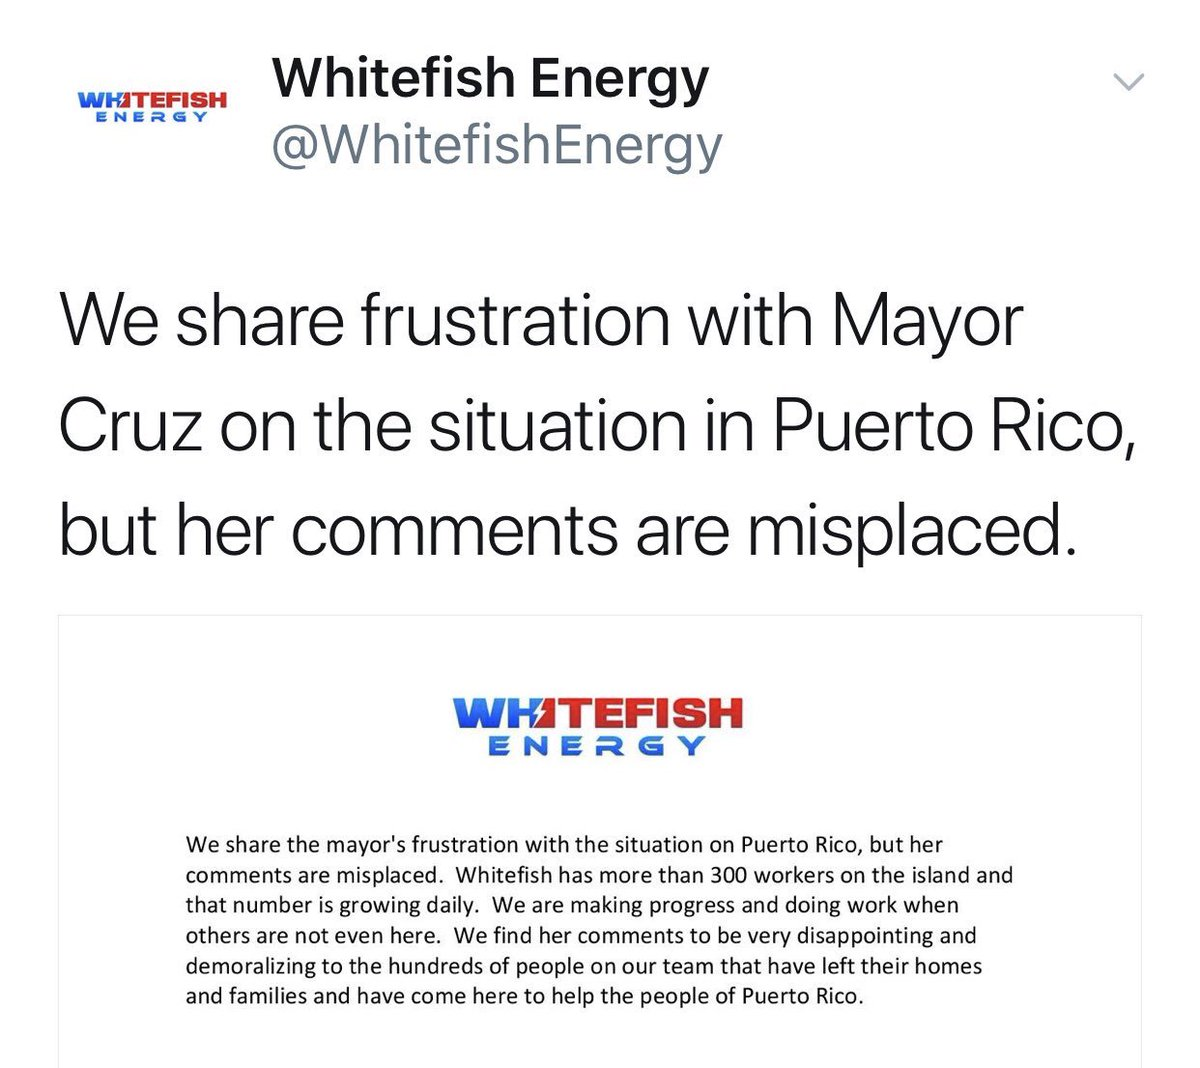 The Montana Company With The Puerto Rico Energy Deal Is Fighting On Twitter With San Juan's Mayor